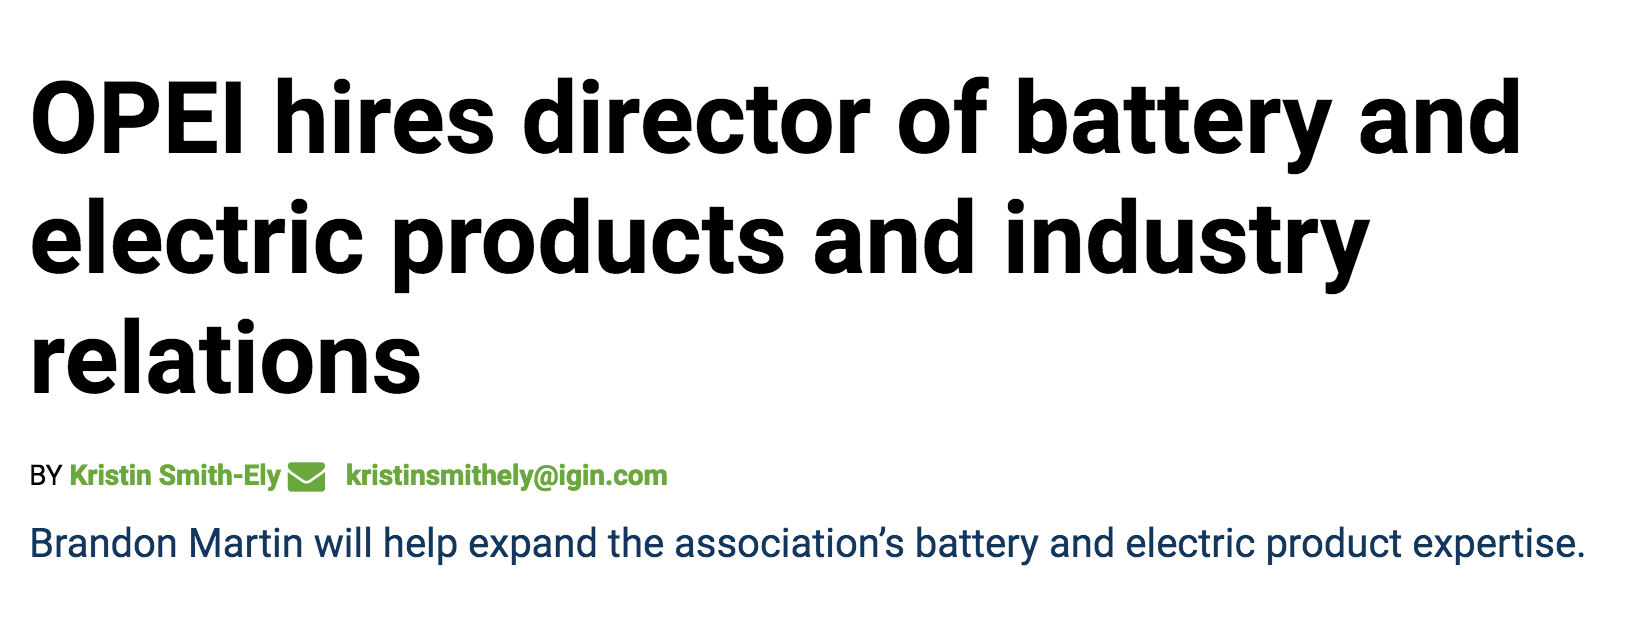 The power-equipment lobby, announcing that it has hired a battery-equipment specialist.